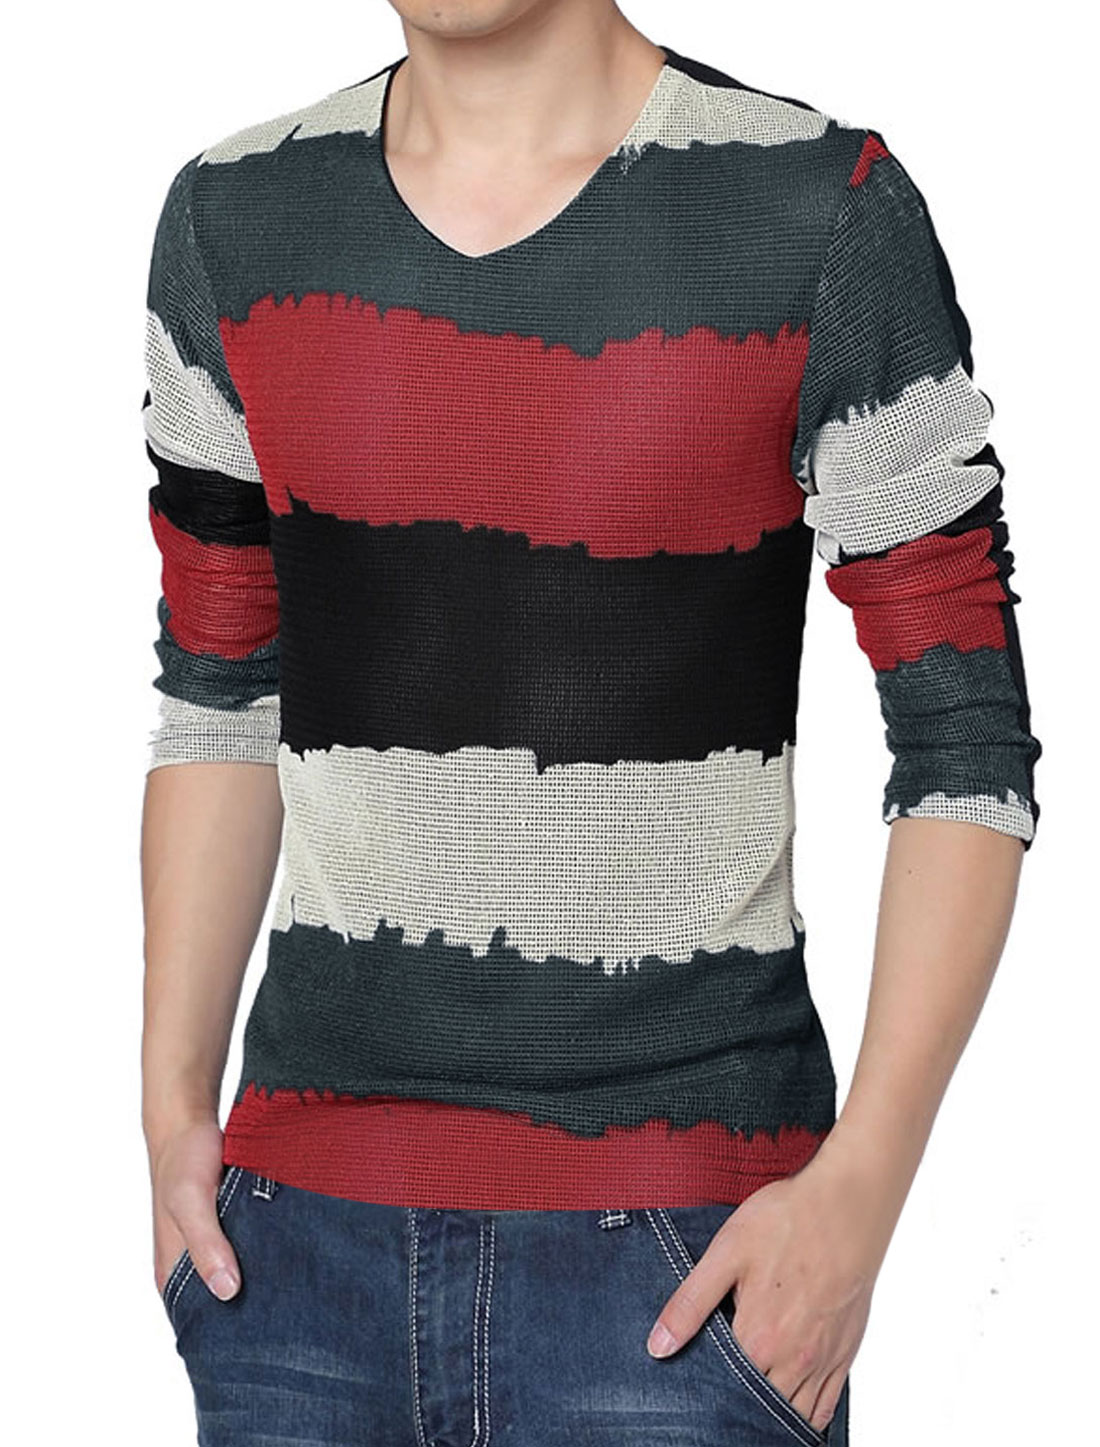 Men Long Sleeve Splicing Stripes Stylish T-Shirt Red Black M